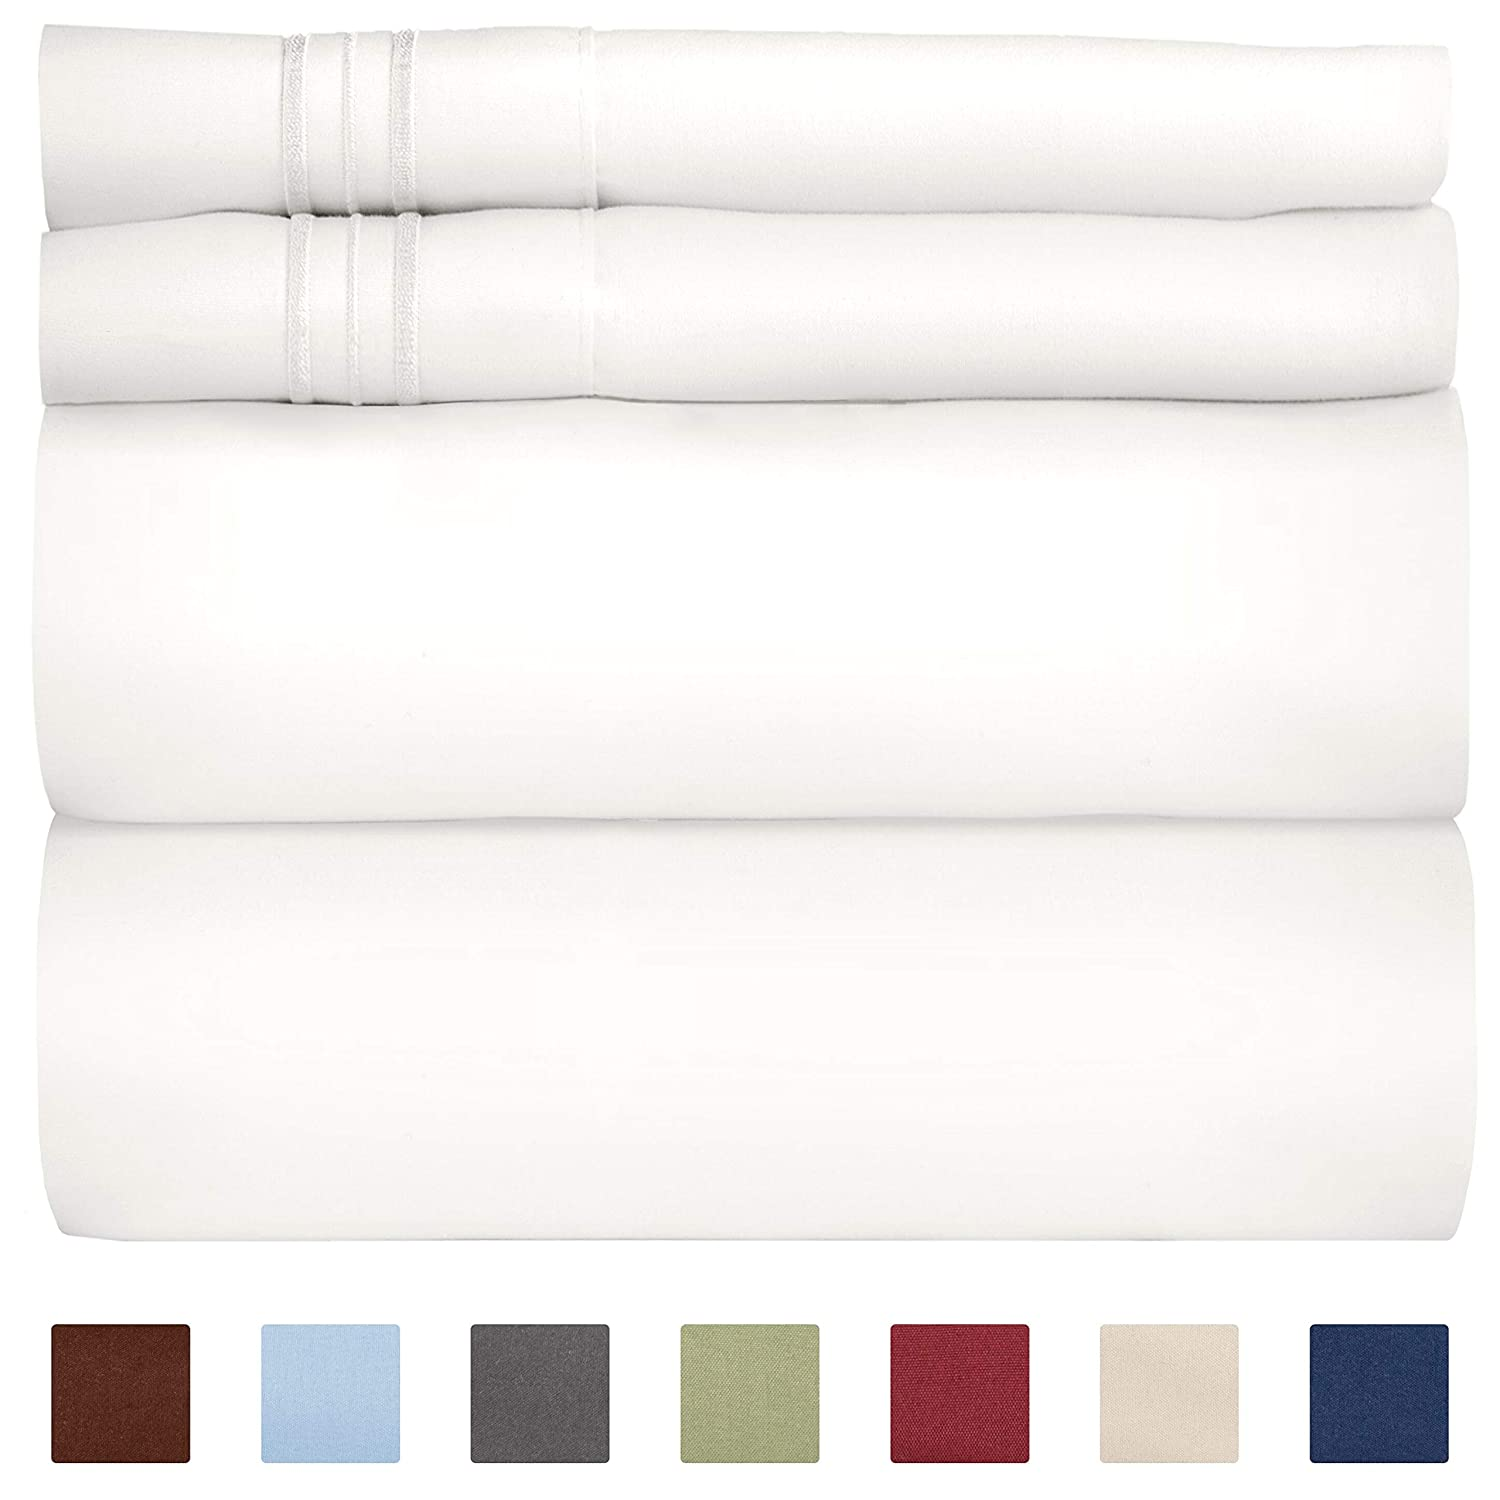 Full Size Sheet Set - 4 Piece Set - Hotel Luxury Bed Sheets - Extra Soft - Deep Pockets - Easy Fit - Breathable & Cooling Sheets - Wrinkle Free - Comfy - White Bed Sheets - Fulls Sheets – 4 PC